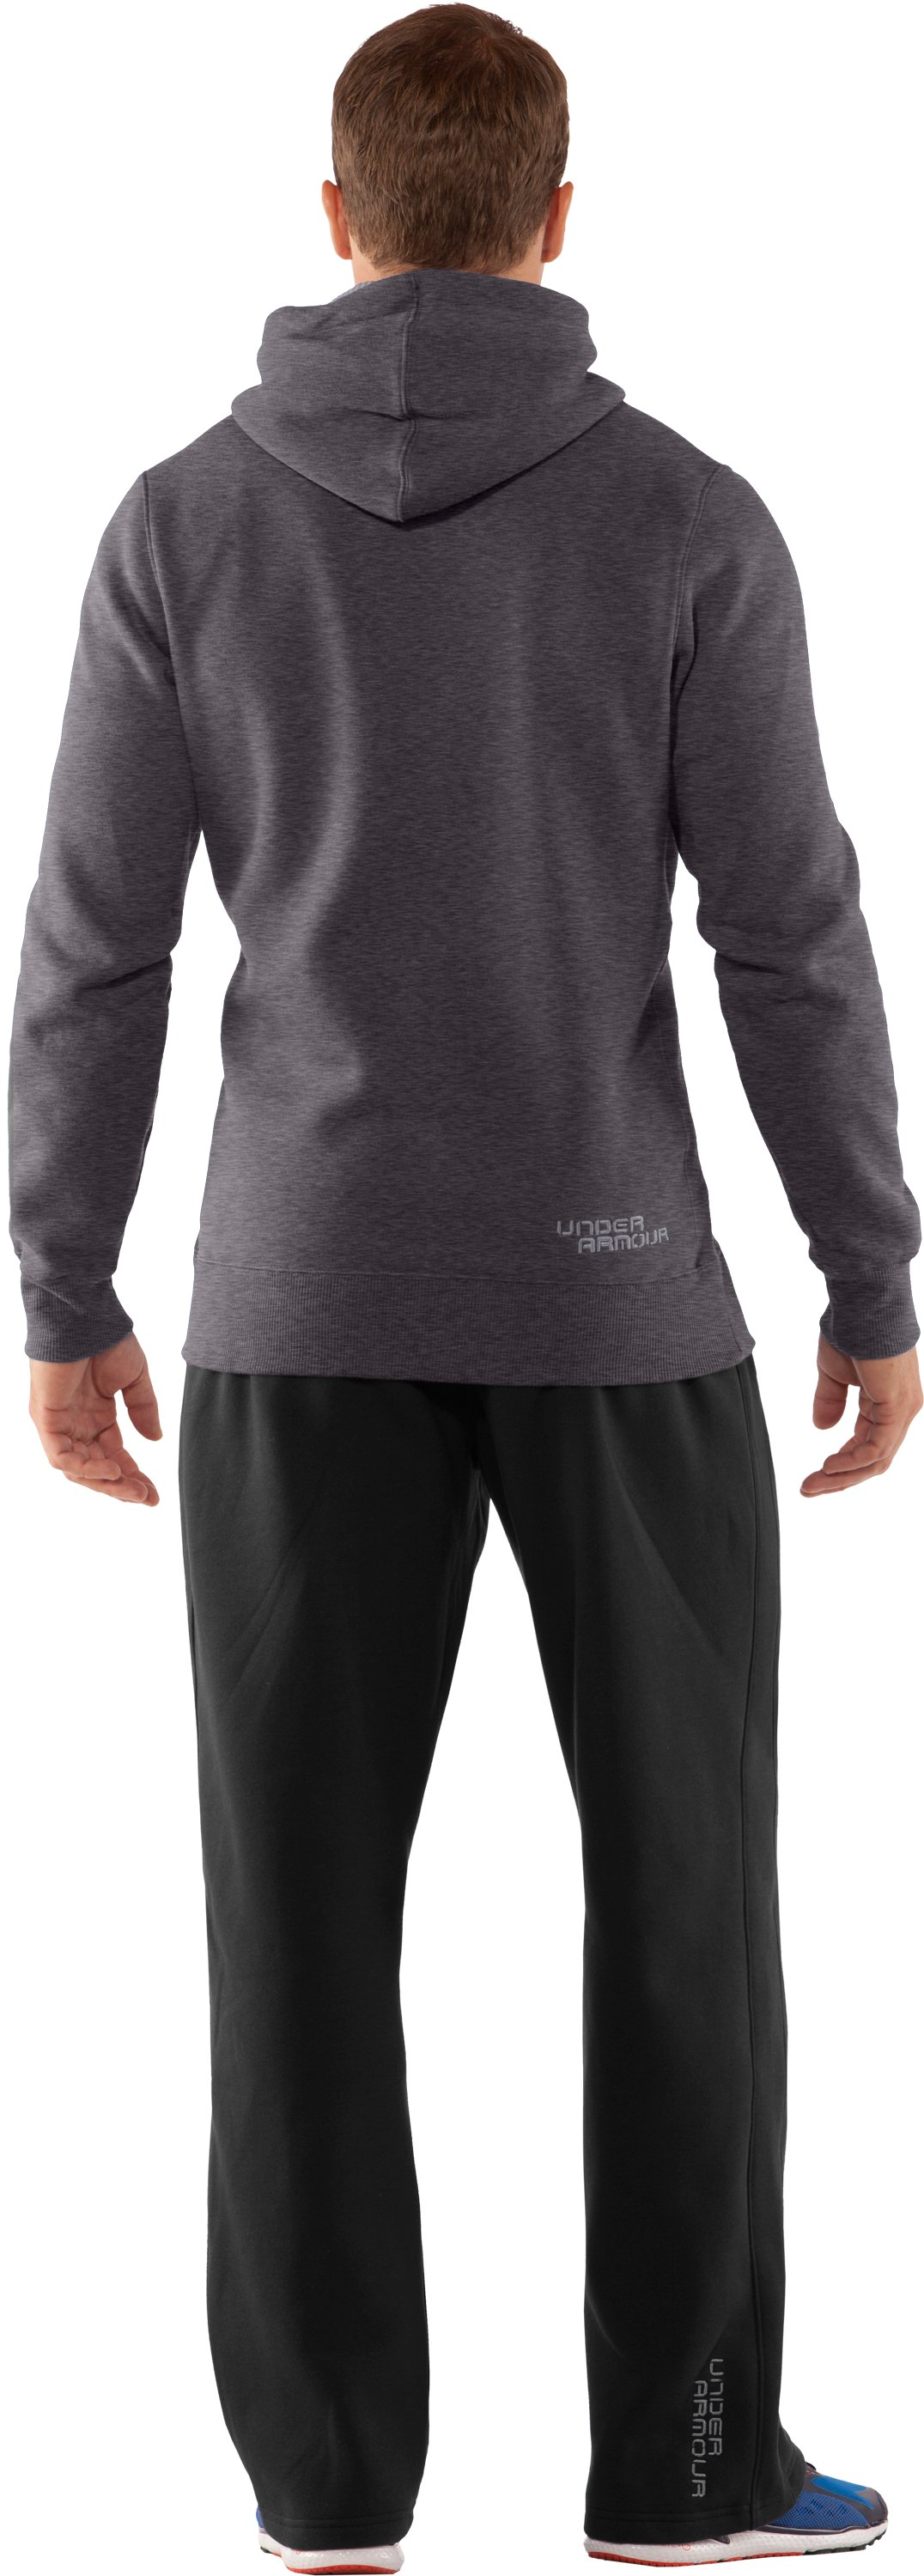 Men's Charged Cotton® Storm Pullover Hoodie, Carbon Heather, Back